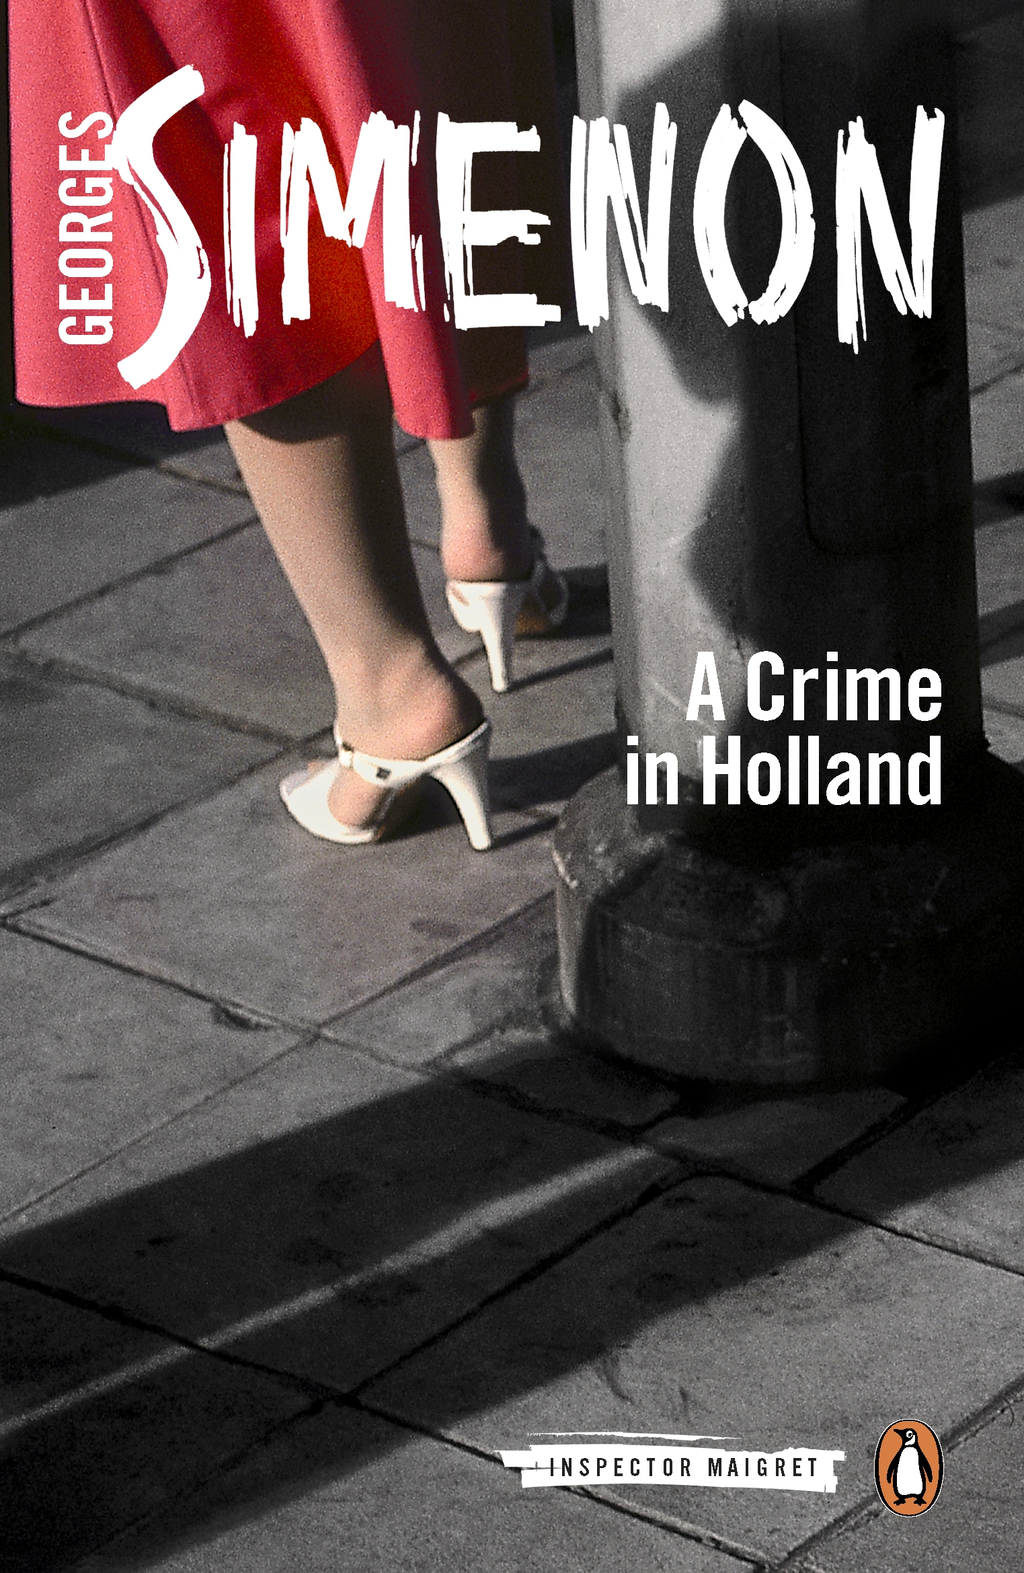 A Crime in Holland Inspector Maigret #7